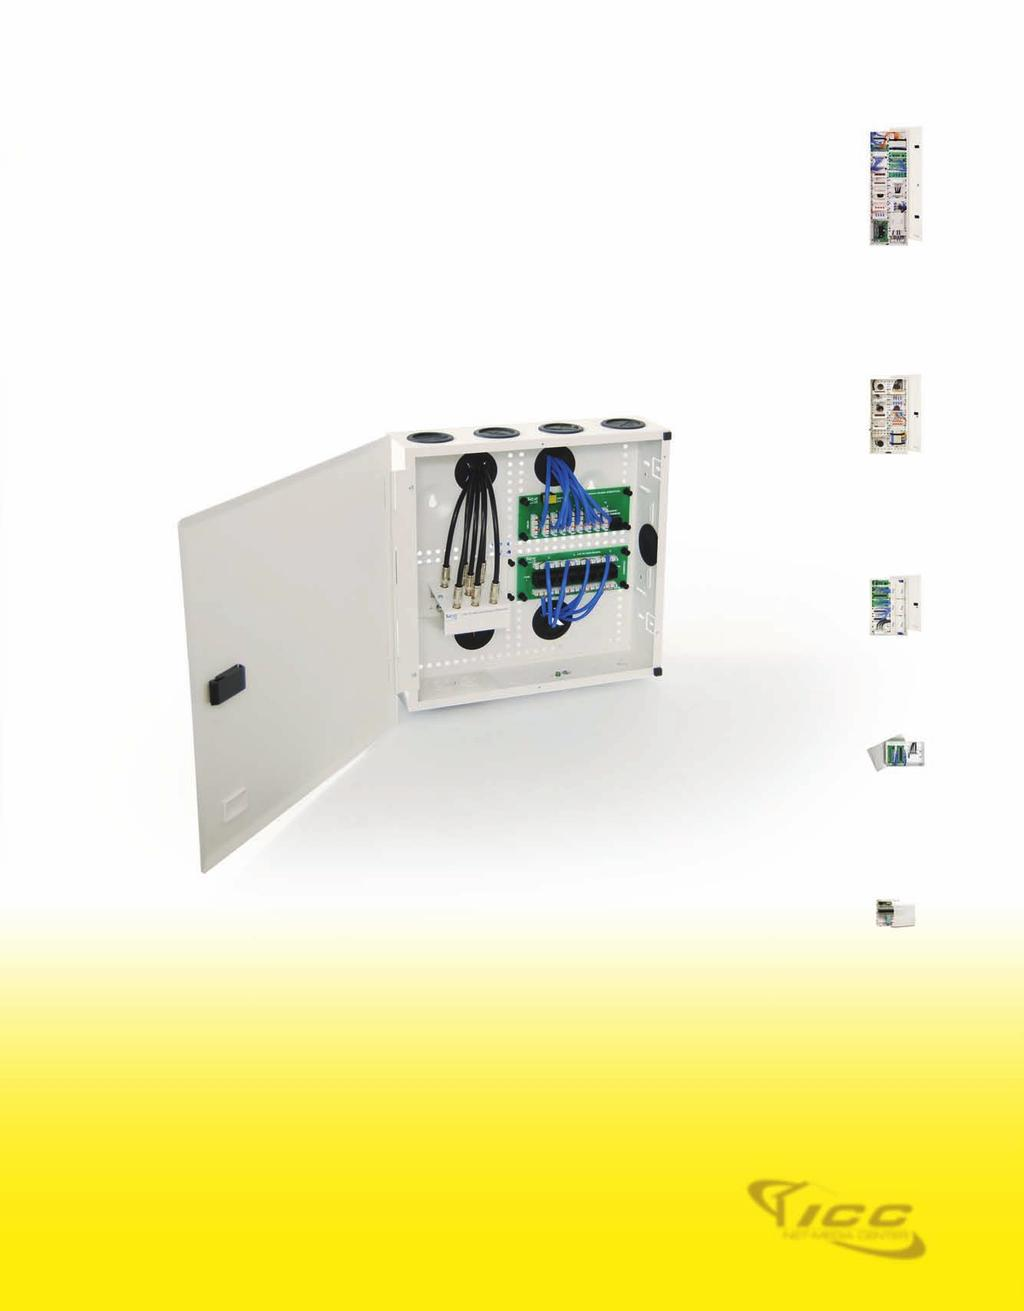 Home Solutions Categories Pdf Image Of Command Center Structured Wiring Panel With 1x8 Coax And Well Equipped Priced 42 28 14 Ul Listed 20 Gauge Steel Push Pin